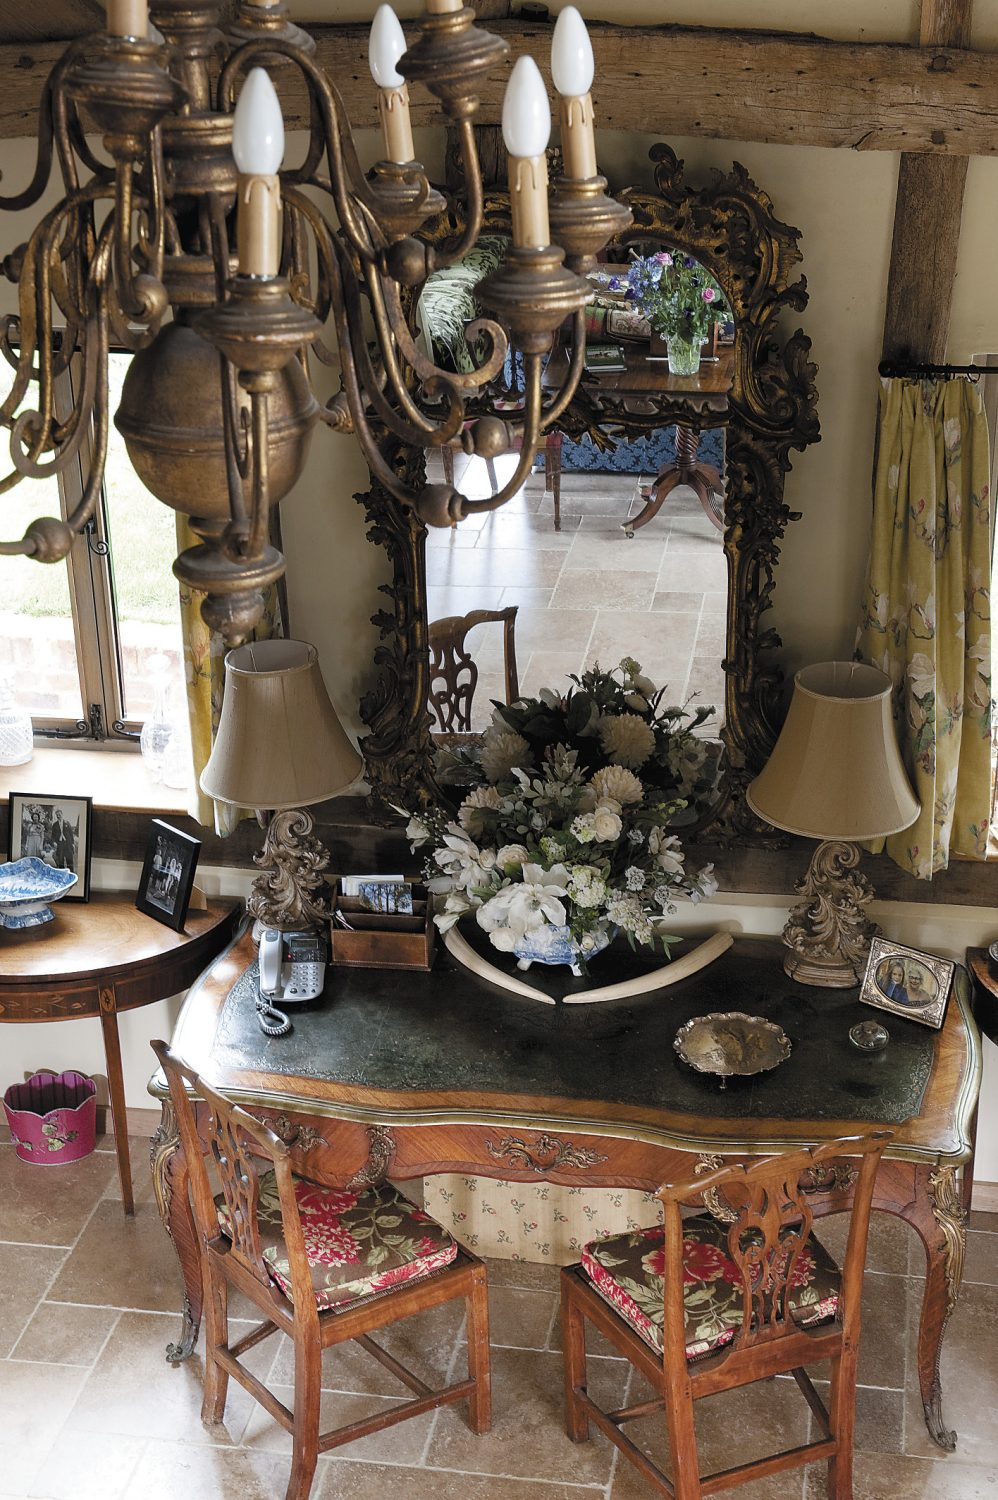 a large ornate gilt looking glass hangs above a Louis Seize desk that once stood in Macroom Castle in County Cork